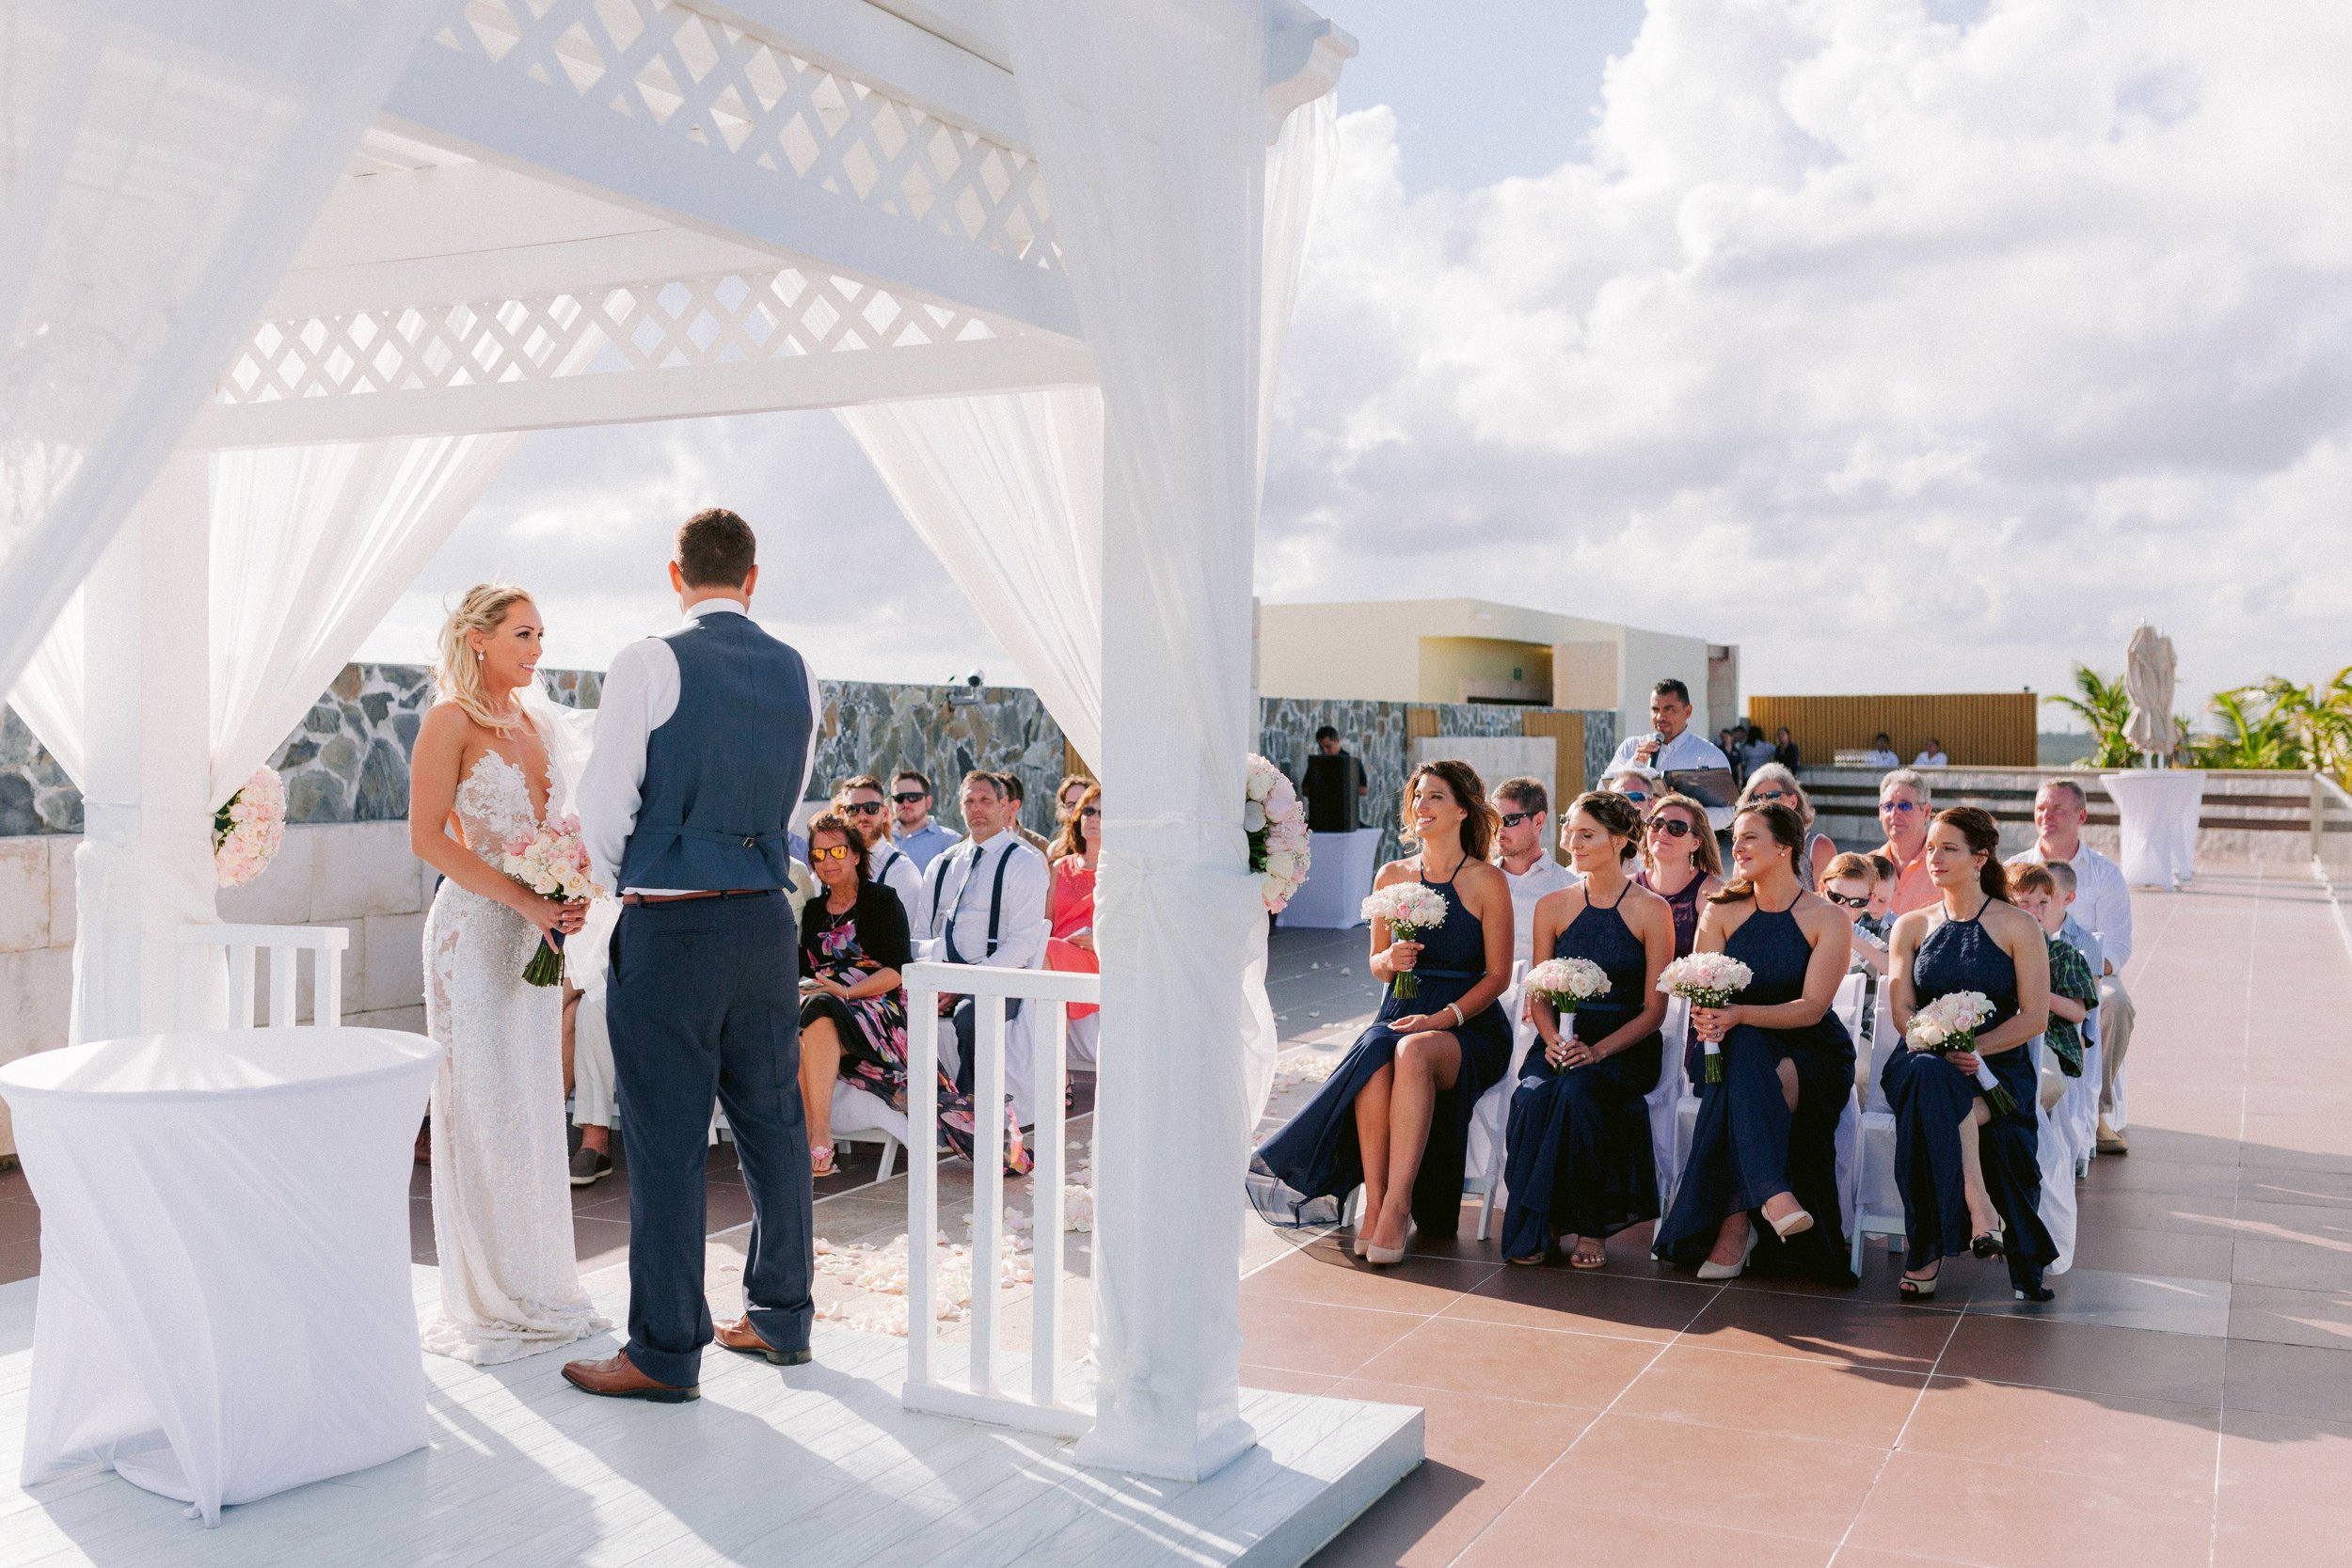 Kim_Jeff_Cancun Wedding_Ceremony_Kurtz_Orpia (63 of 119).jpg